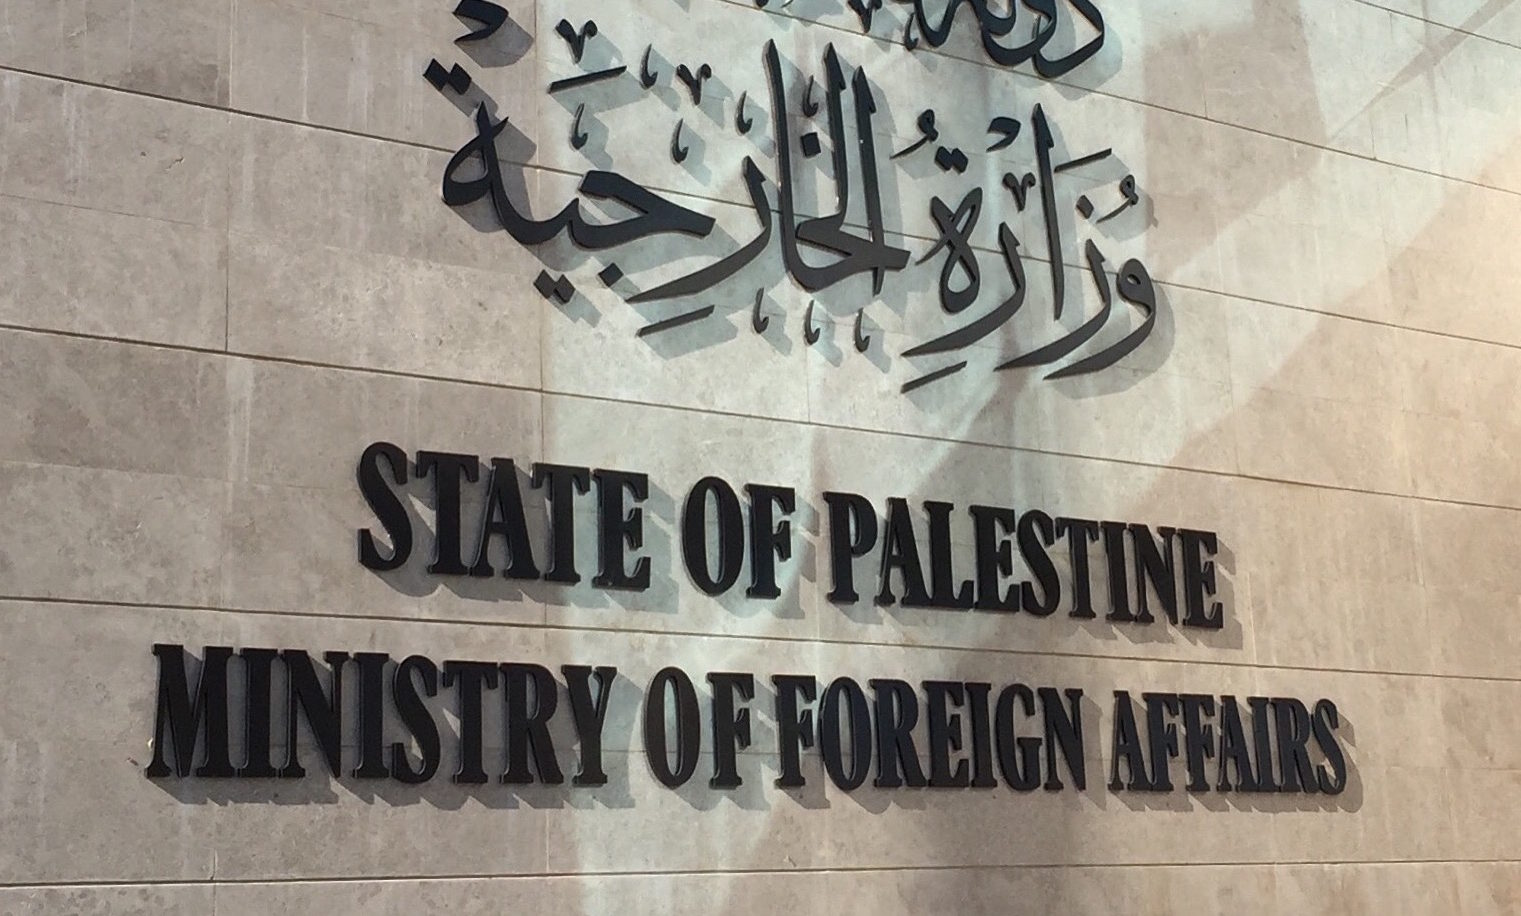 Swedish FM Margot Wallström's Visit To The Palestinian Territories